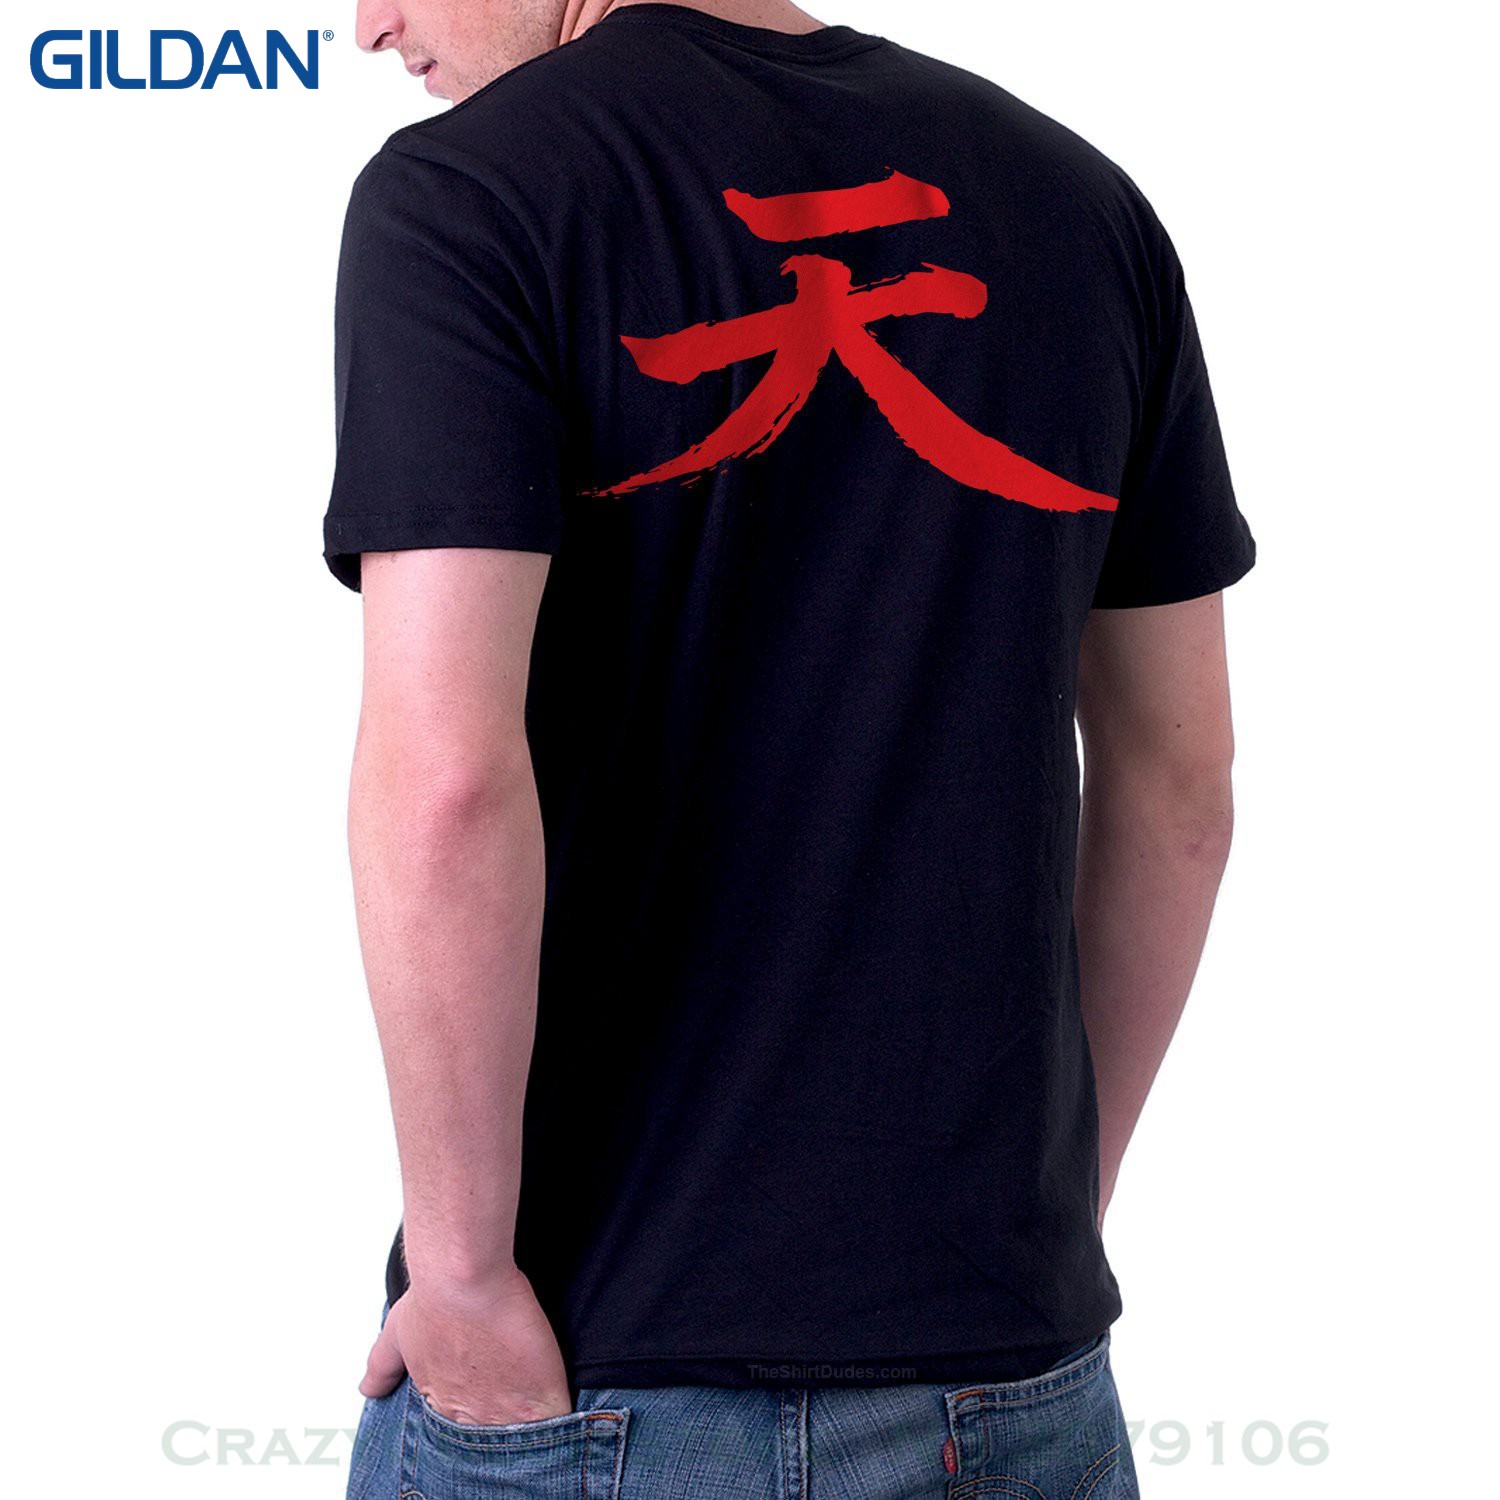 Short Sleeves Cotton T Shirt Free Shipping Theshirtdudes Akuma Street Fighter - Adult T-shirt For Cosplay (back)